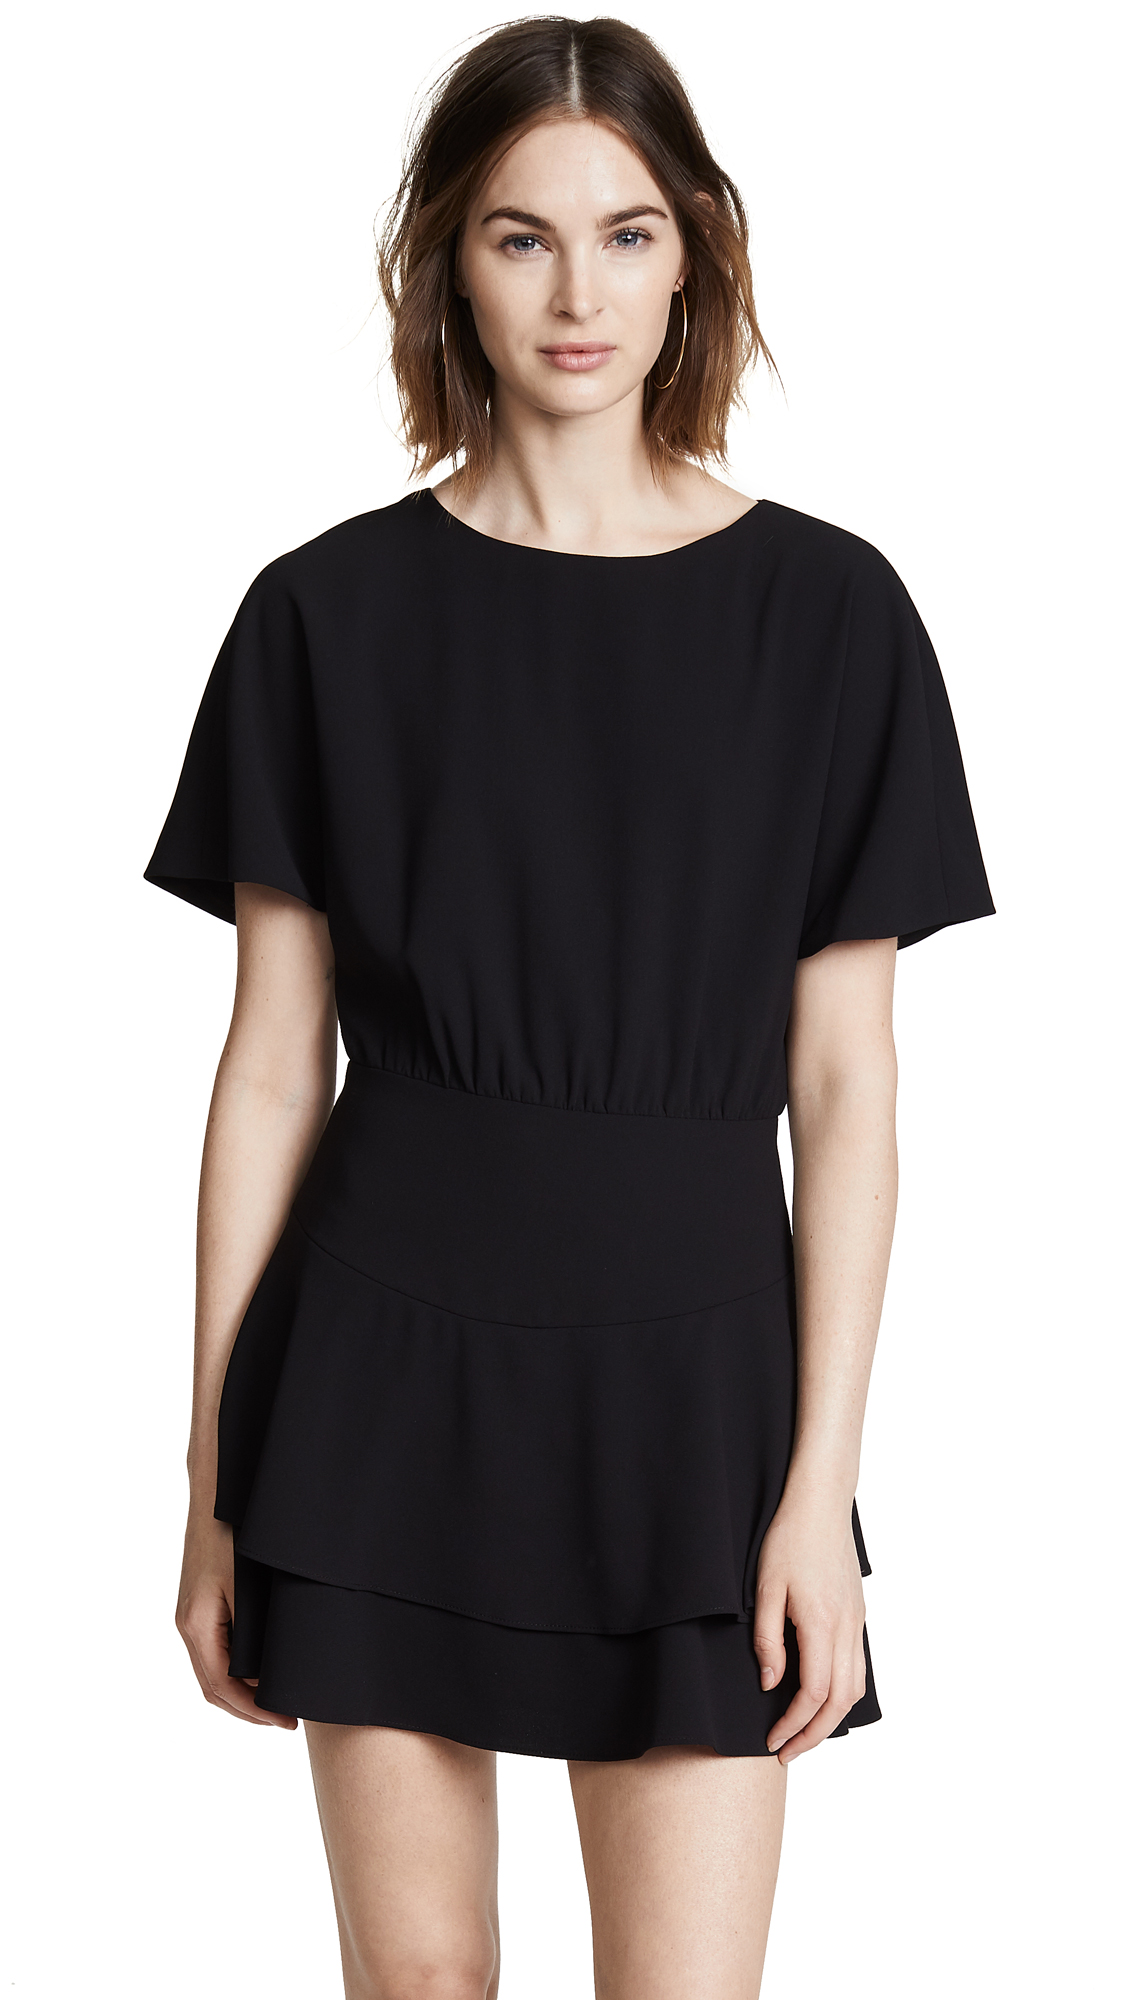 Alice+Olivia Palmira Ruffled Dress - Black